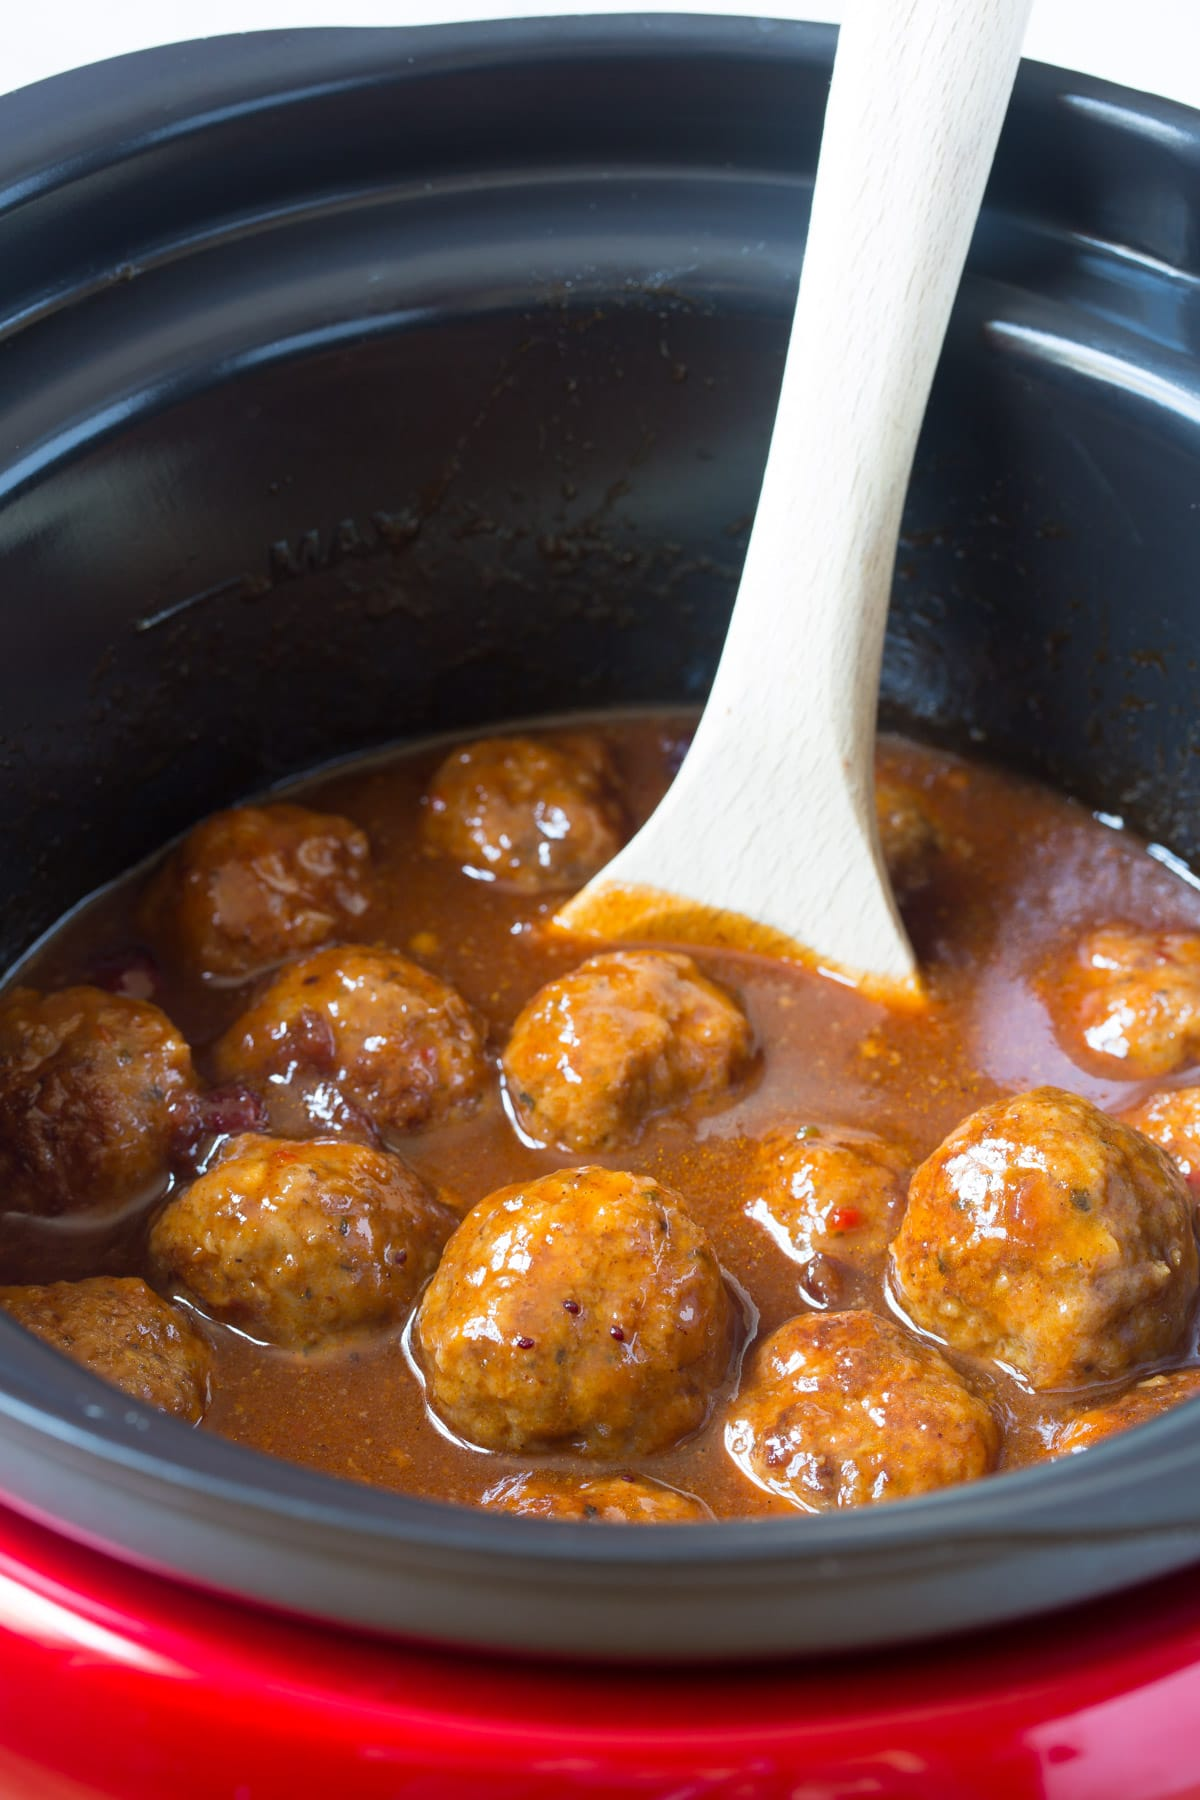 Easy Slow Cooker Cocktail Meatballs Recipe - (Crock Pot Meatballs) #ASpicyPerspective #meatballs #slowcooker #crockpot #meatballs